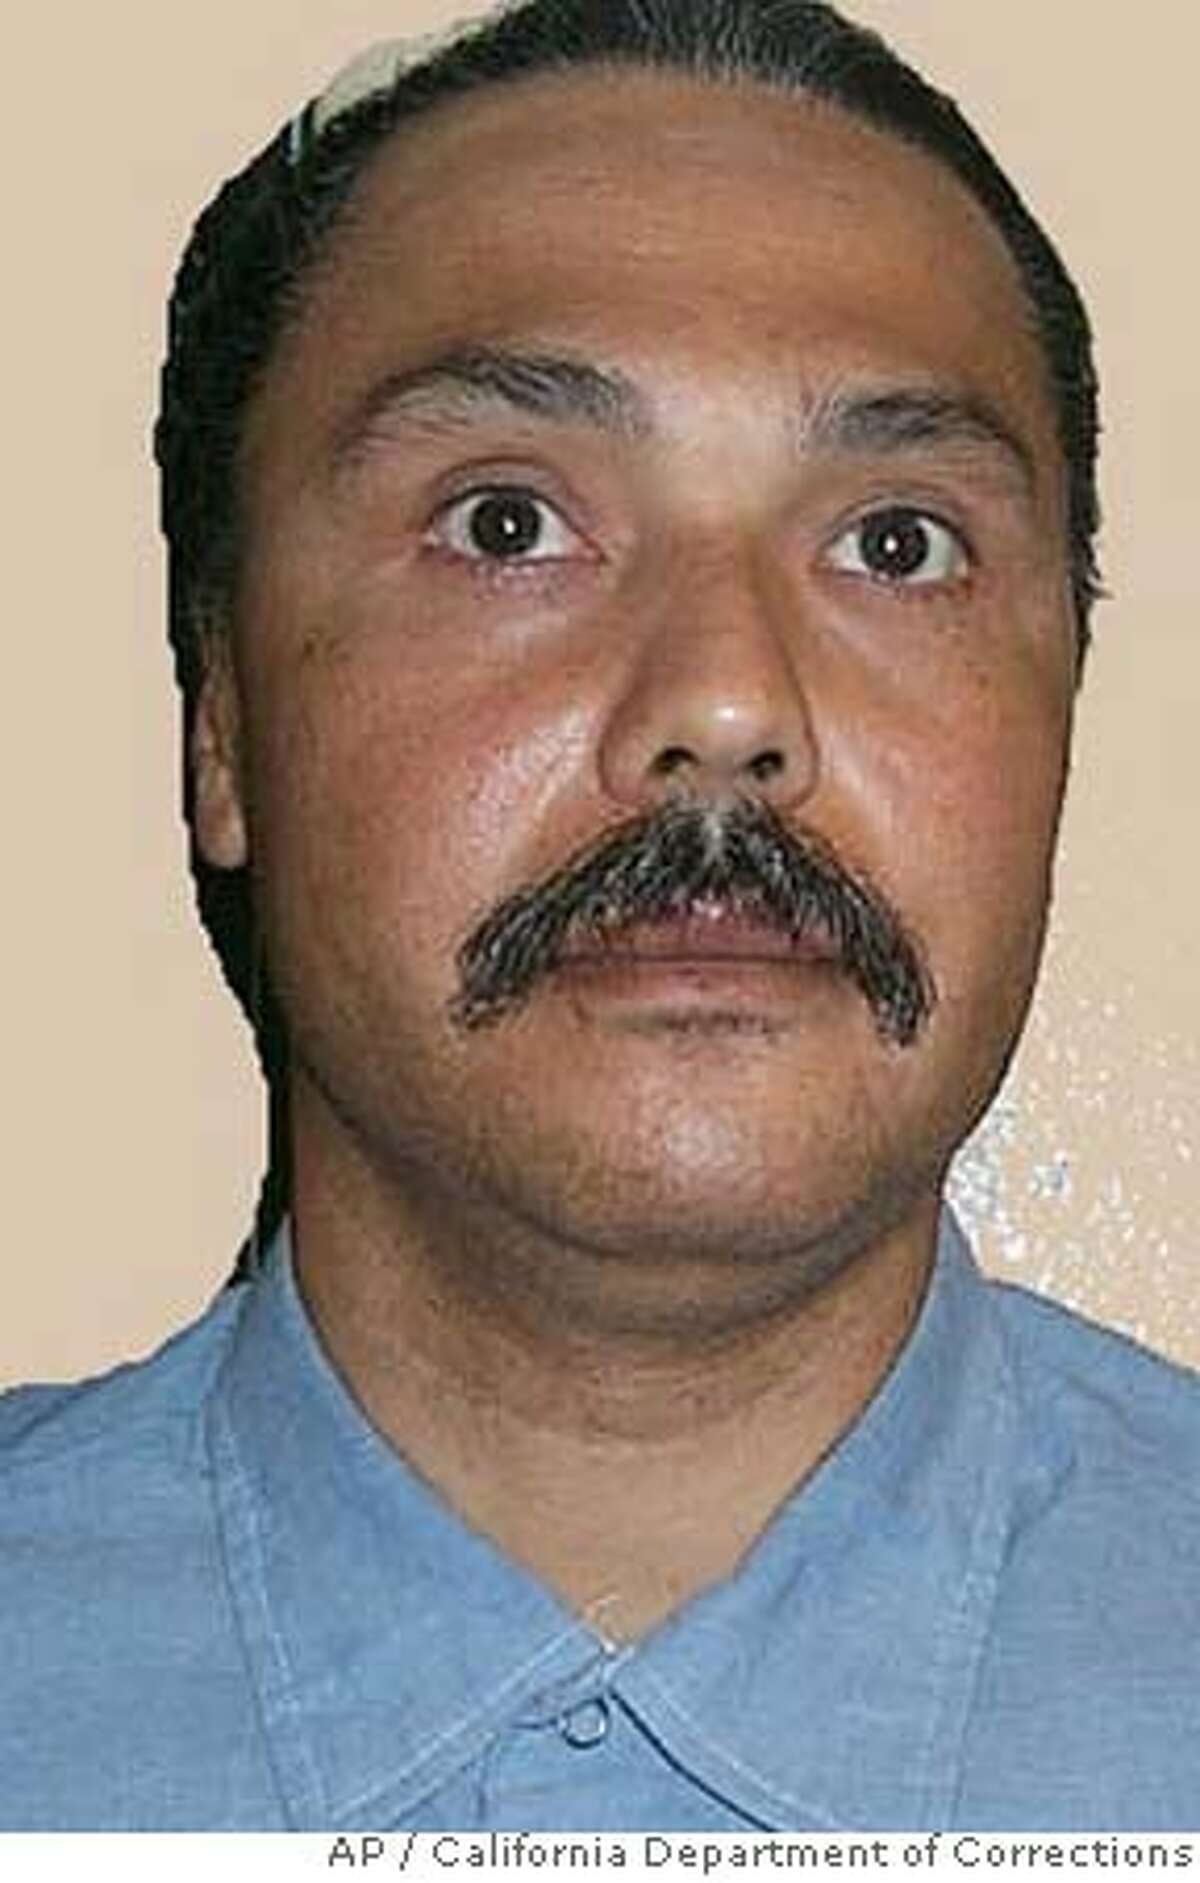 ** FILE ** PHOTO HAS BEEN DIGITALLY ALTERED BY SOURCE TO REMOVE BACKGROUND ** In this undated photo released by the California Department of Corrections, death row inmate Michael Morales, 46, of Stockton, is seen. Faced with grim testimony of poorly trained executioners operating in cramped, dimly lit quarters, a federal judge on Friday, Dec. 15. 2006, declared California's execution procedure unconstitutional. California has been under a capital punishment moratorium since February when U.S. District Judge Jeremy Fogel halted the execution of Morales, a convicted rapist and murderer, amid claims inmates were suffering excruciating deaths. (AP Photo/ California Department of Corrections) ** PHOTO HAS BEEN DIGITALLY ALTERED BY SOURCE TO REMOVE BACKGROUND **